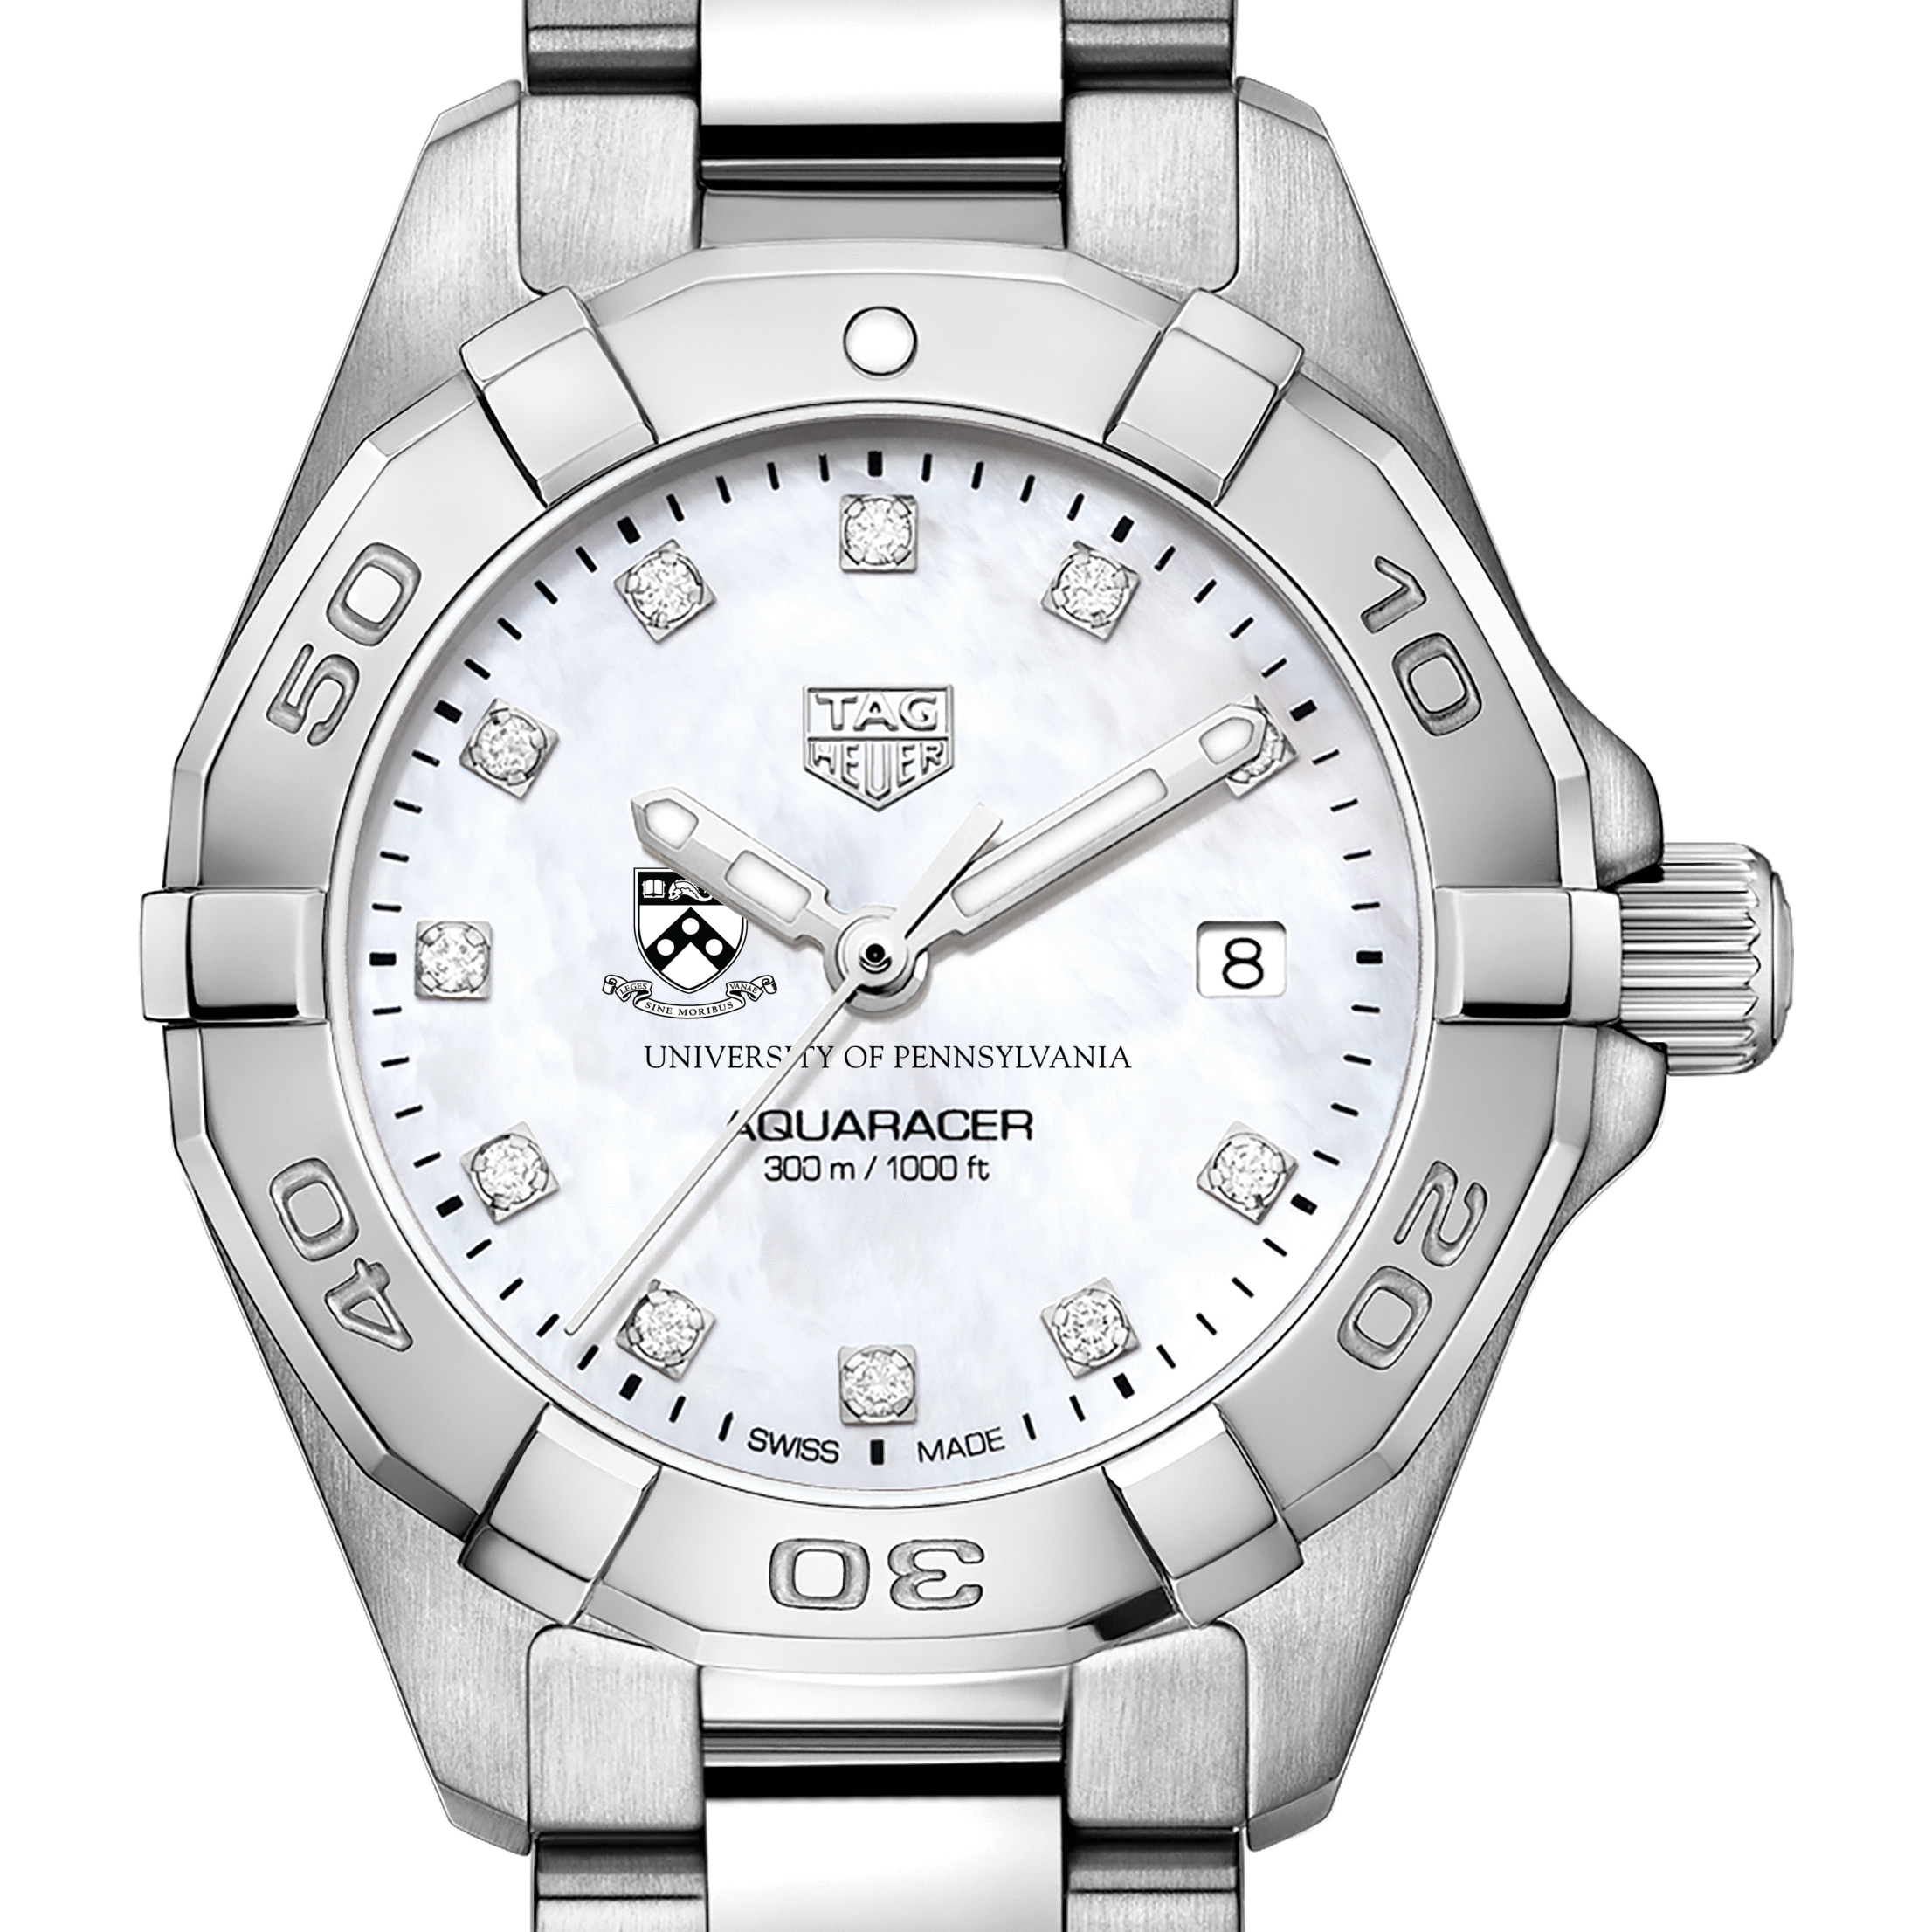 Penn Women's TAG Heuer Steel Aquaracer with MOP Diamond Dial